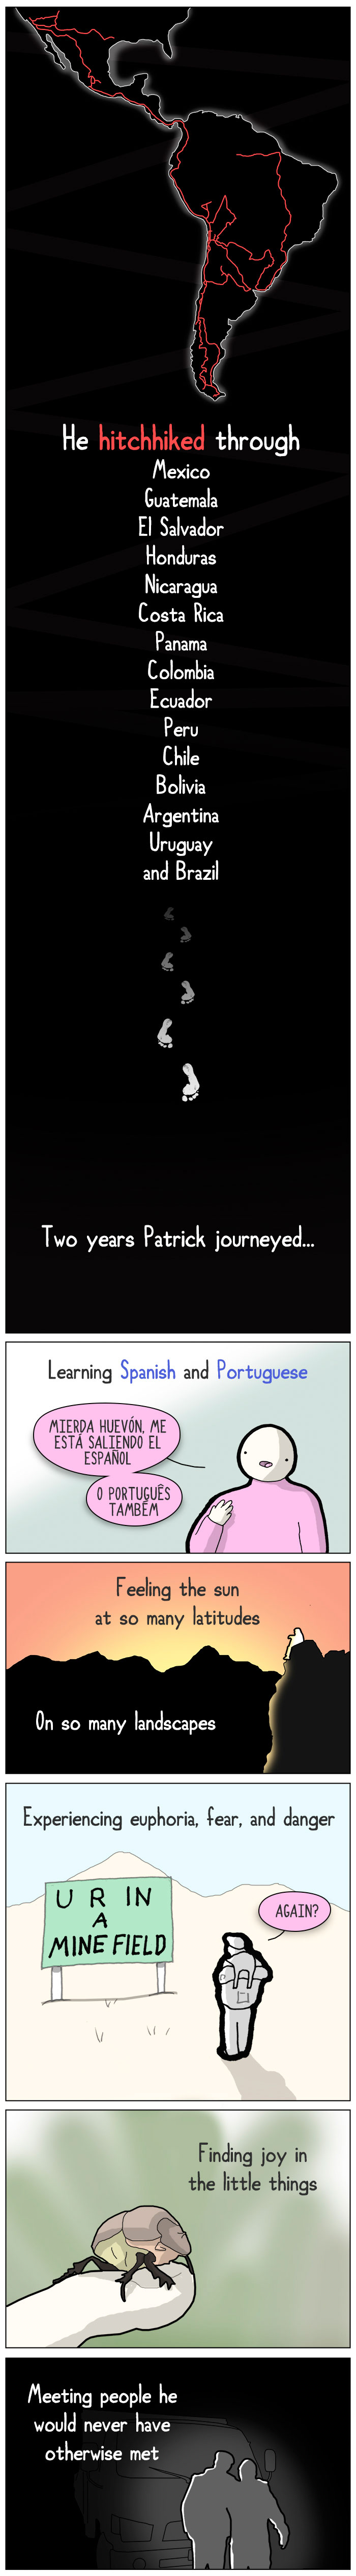 the-modern-nomad-tribute-late-friend-patrick-tiscomics-4